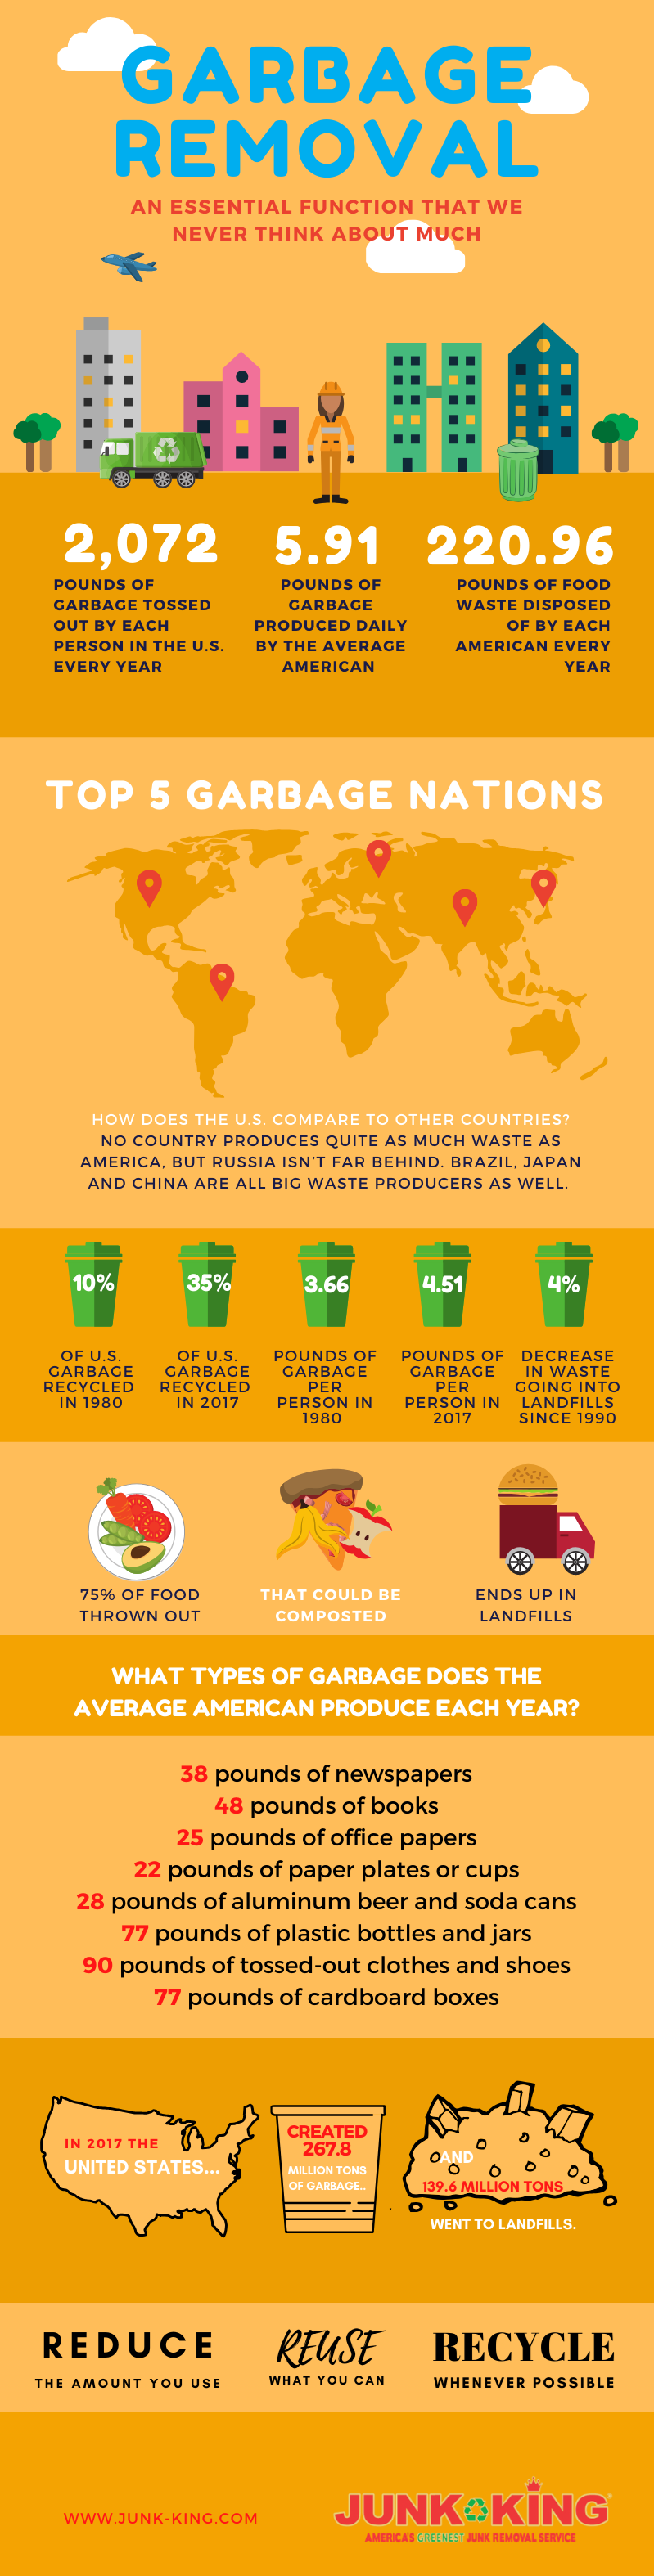 garbage_removal_infographic